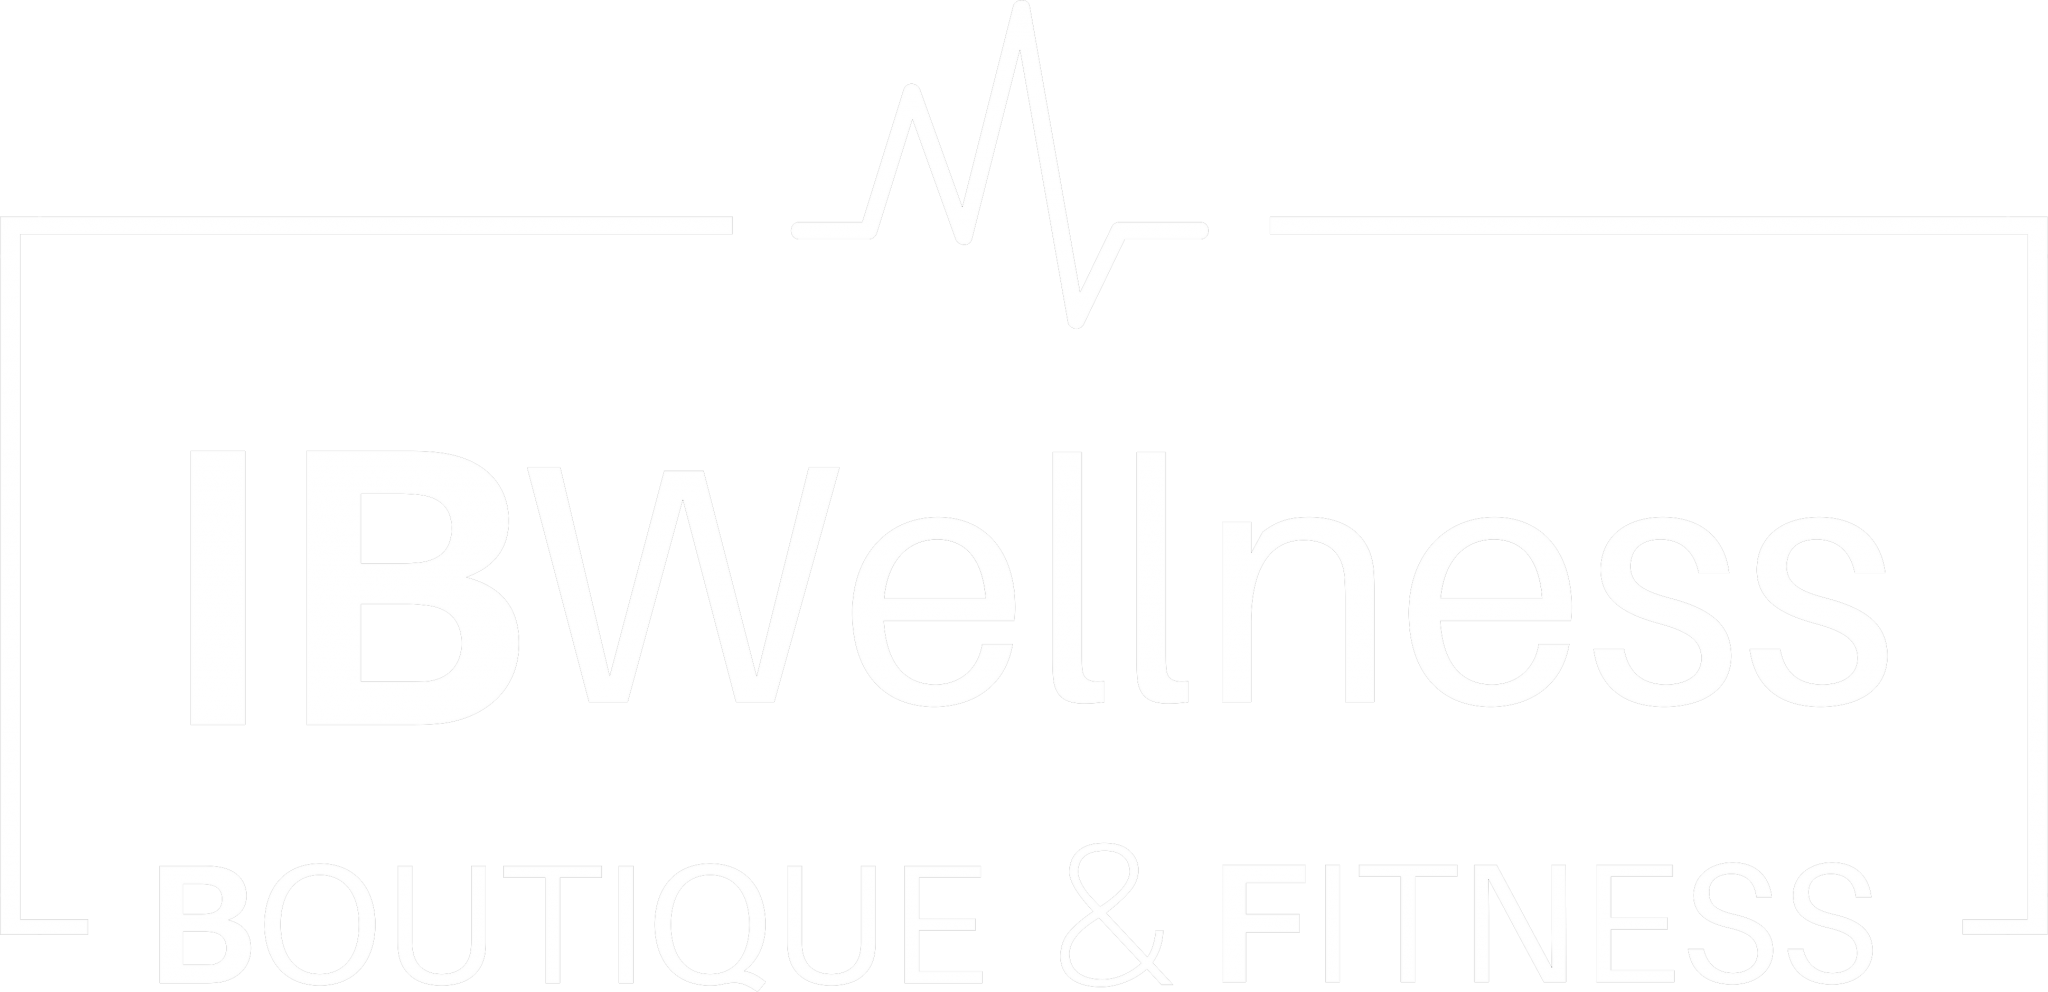 IBWellness Boutique & Fitness